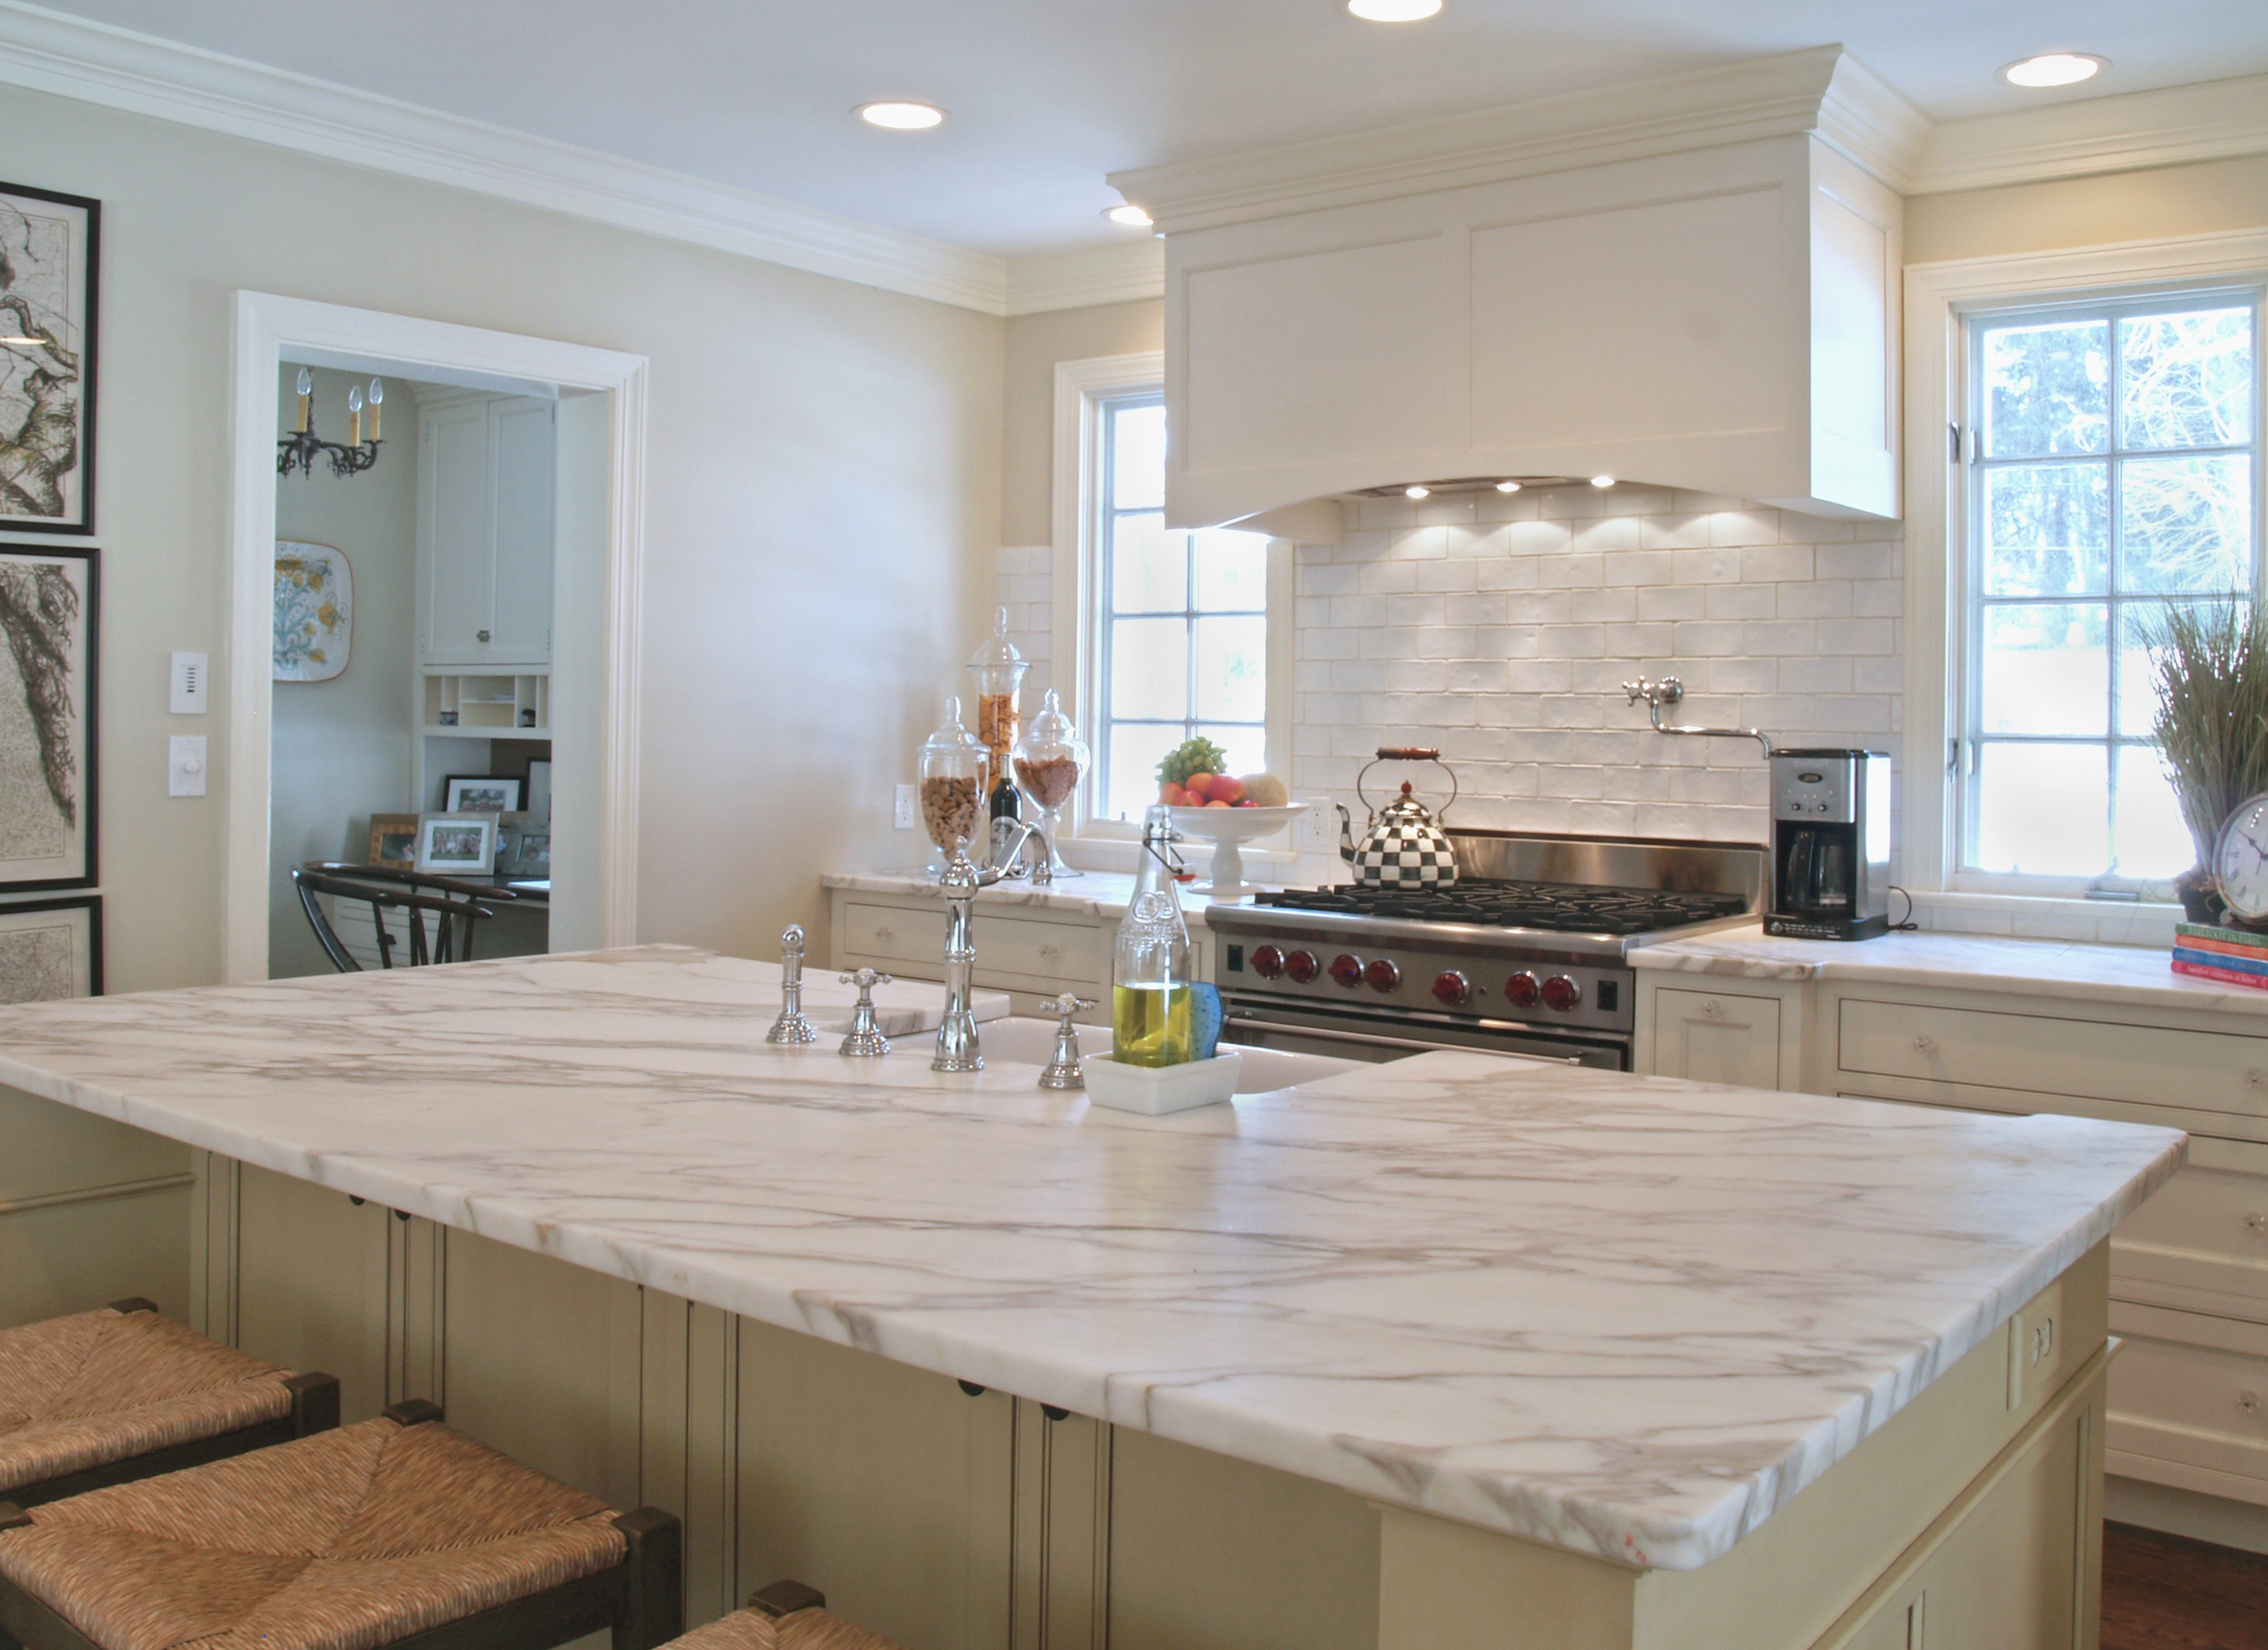 OLYMPUS DIGITAL CAMERA-We do great kitchen & bath remodeling, home renovations, custom lighting, custom cabinet installation, cabinet refacing and refinishing, outdoor kitchens, commercial kitchen, countertops and more